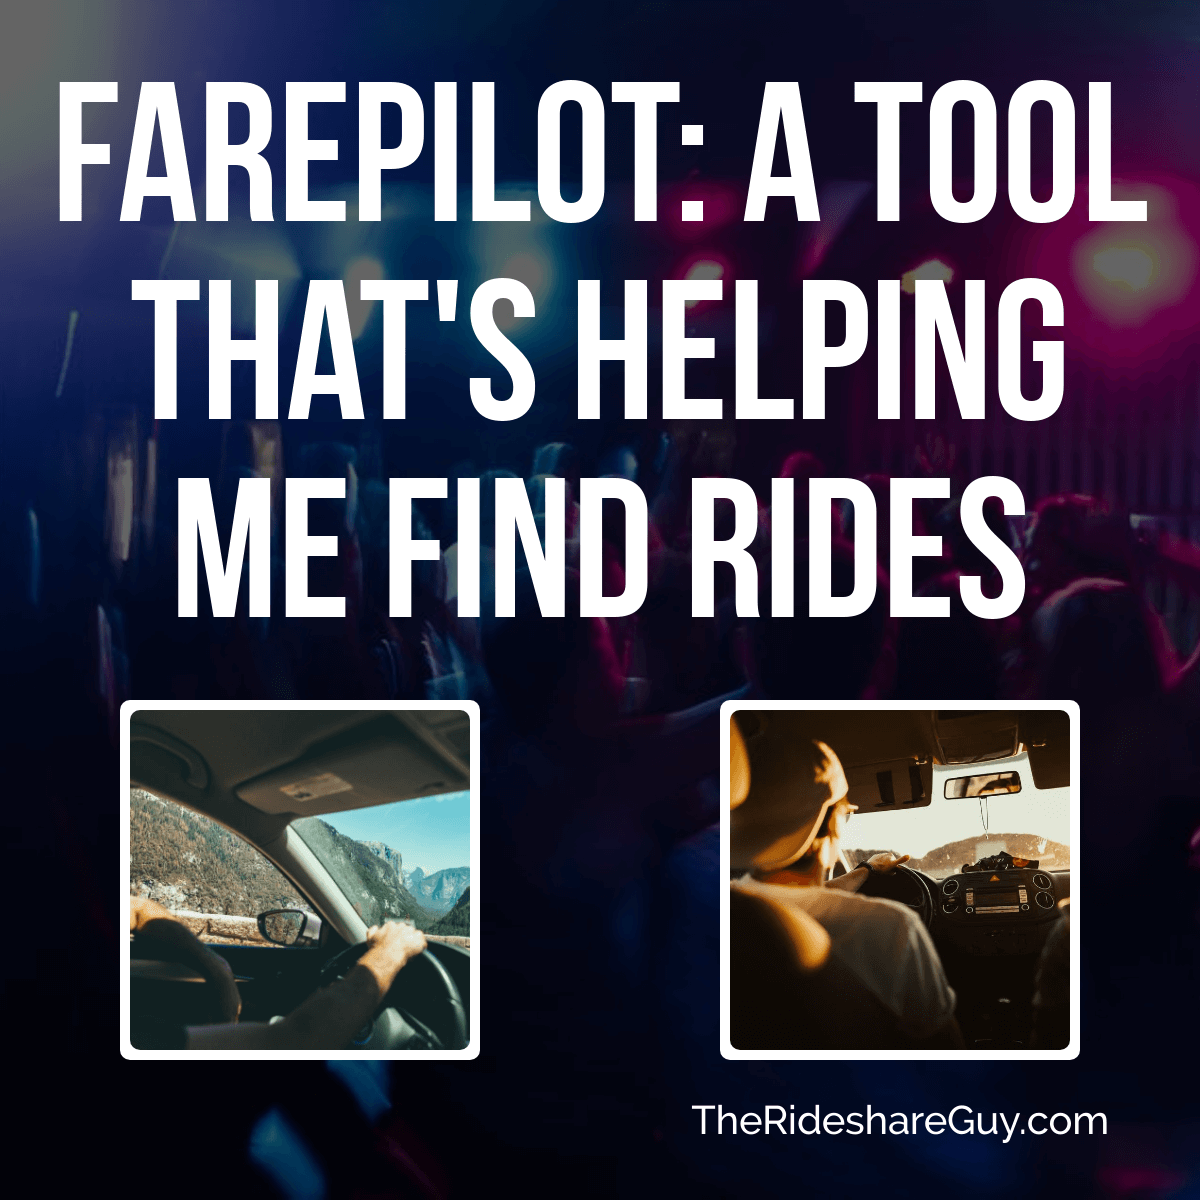 FarePilot: A Tool That's Helping Me Find Rides